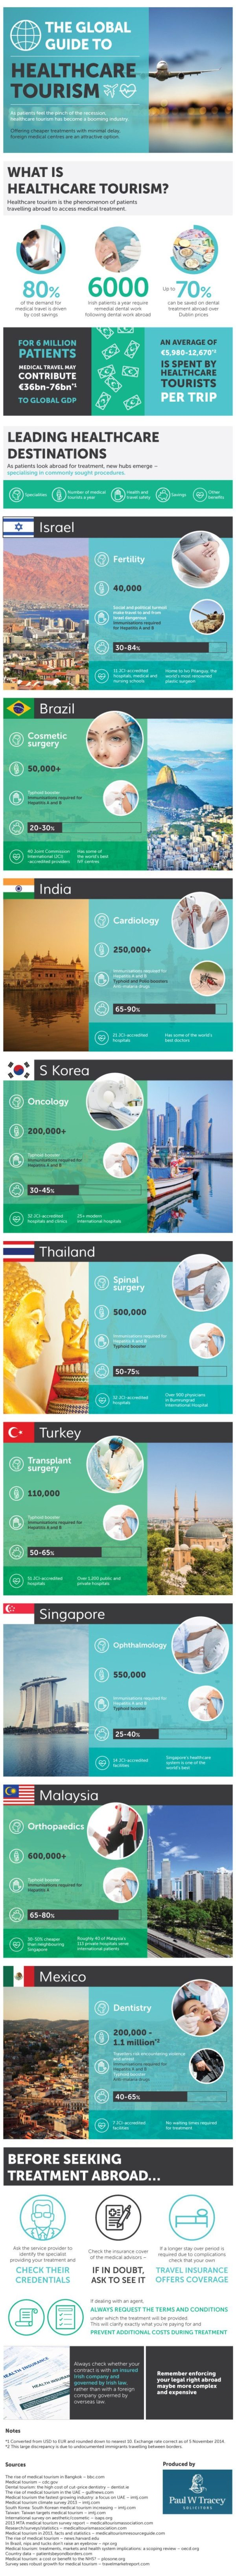 The-global-guide-to-healthcare-tourism-infographic